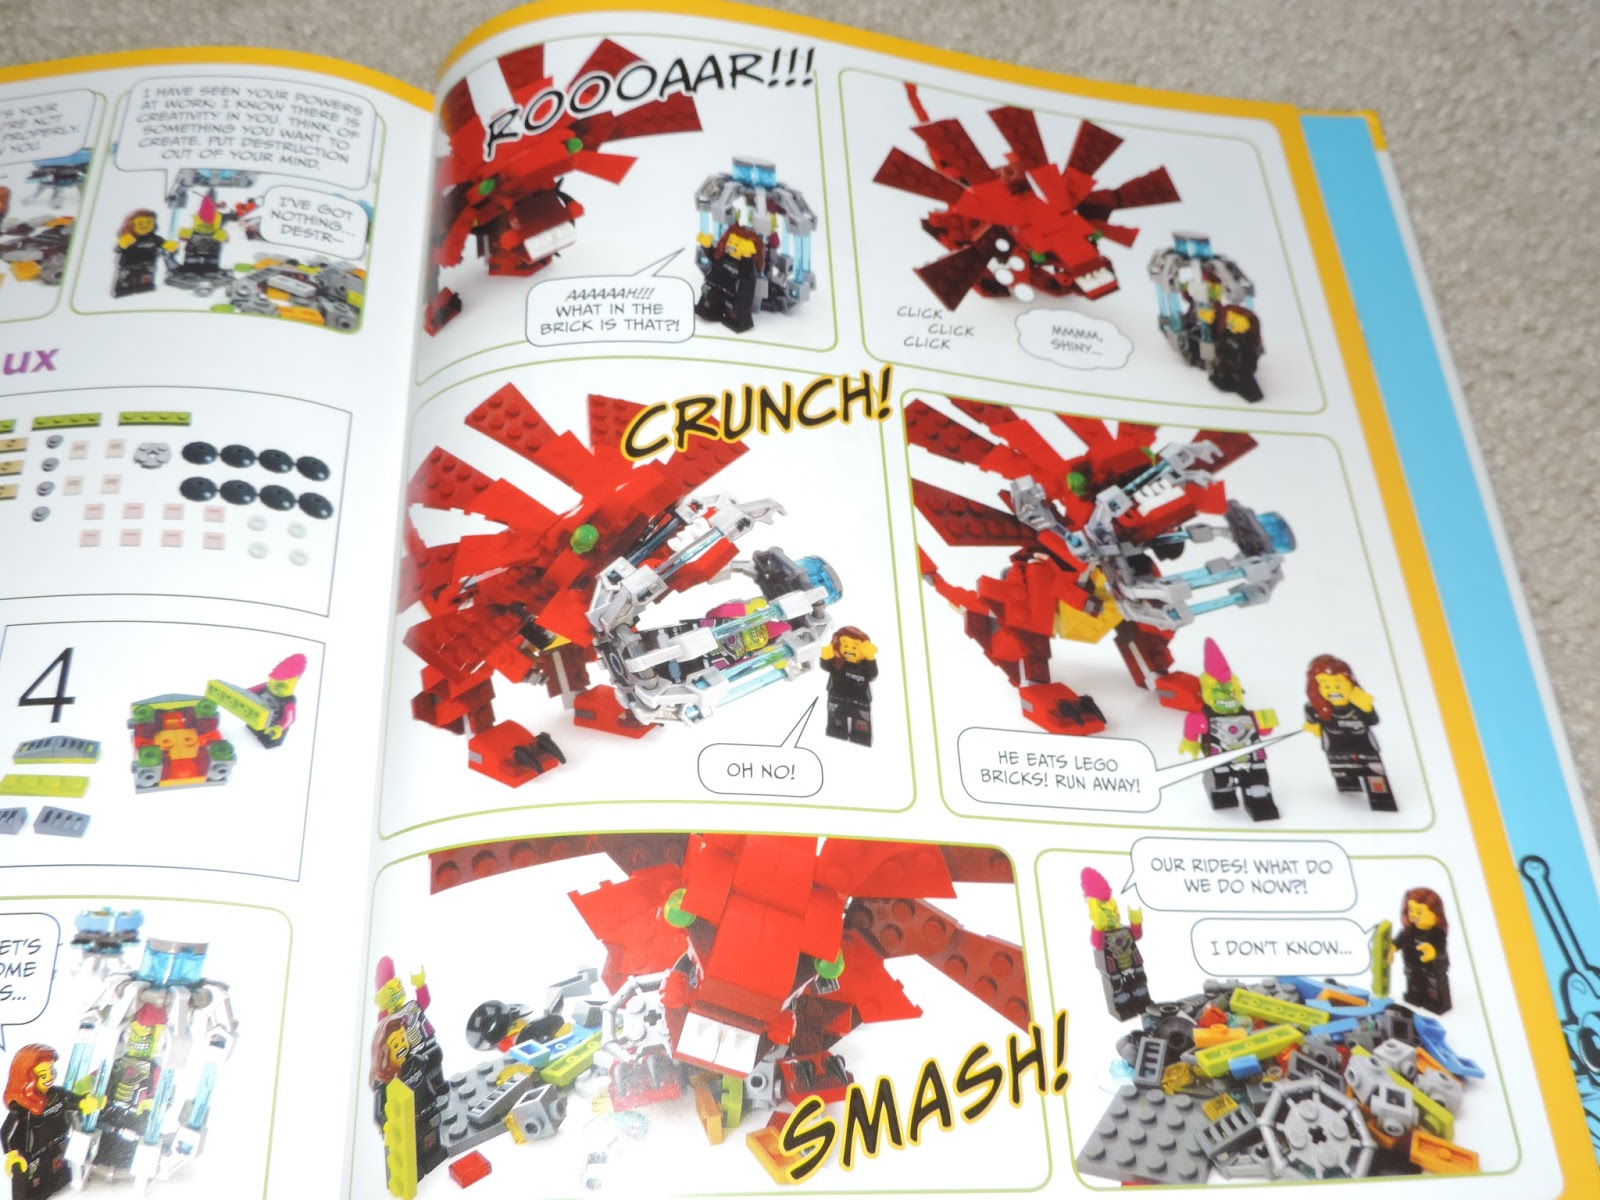 No starch press has published the finest in geek entertainment since 1994 they regularly cover topics like lego hacking science math and programming for